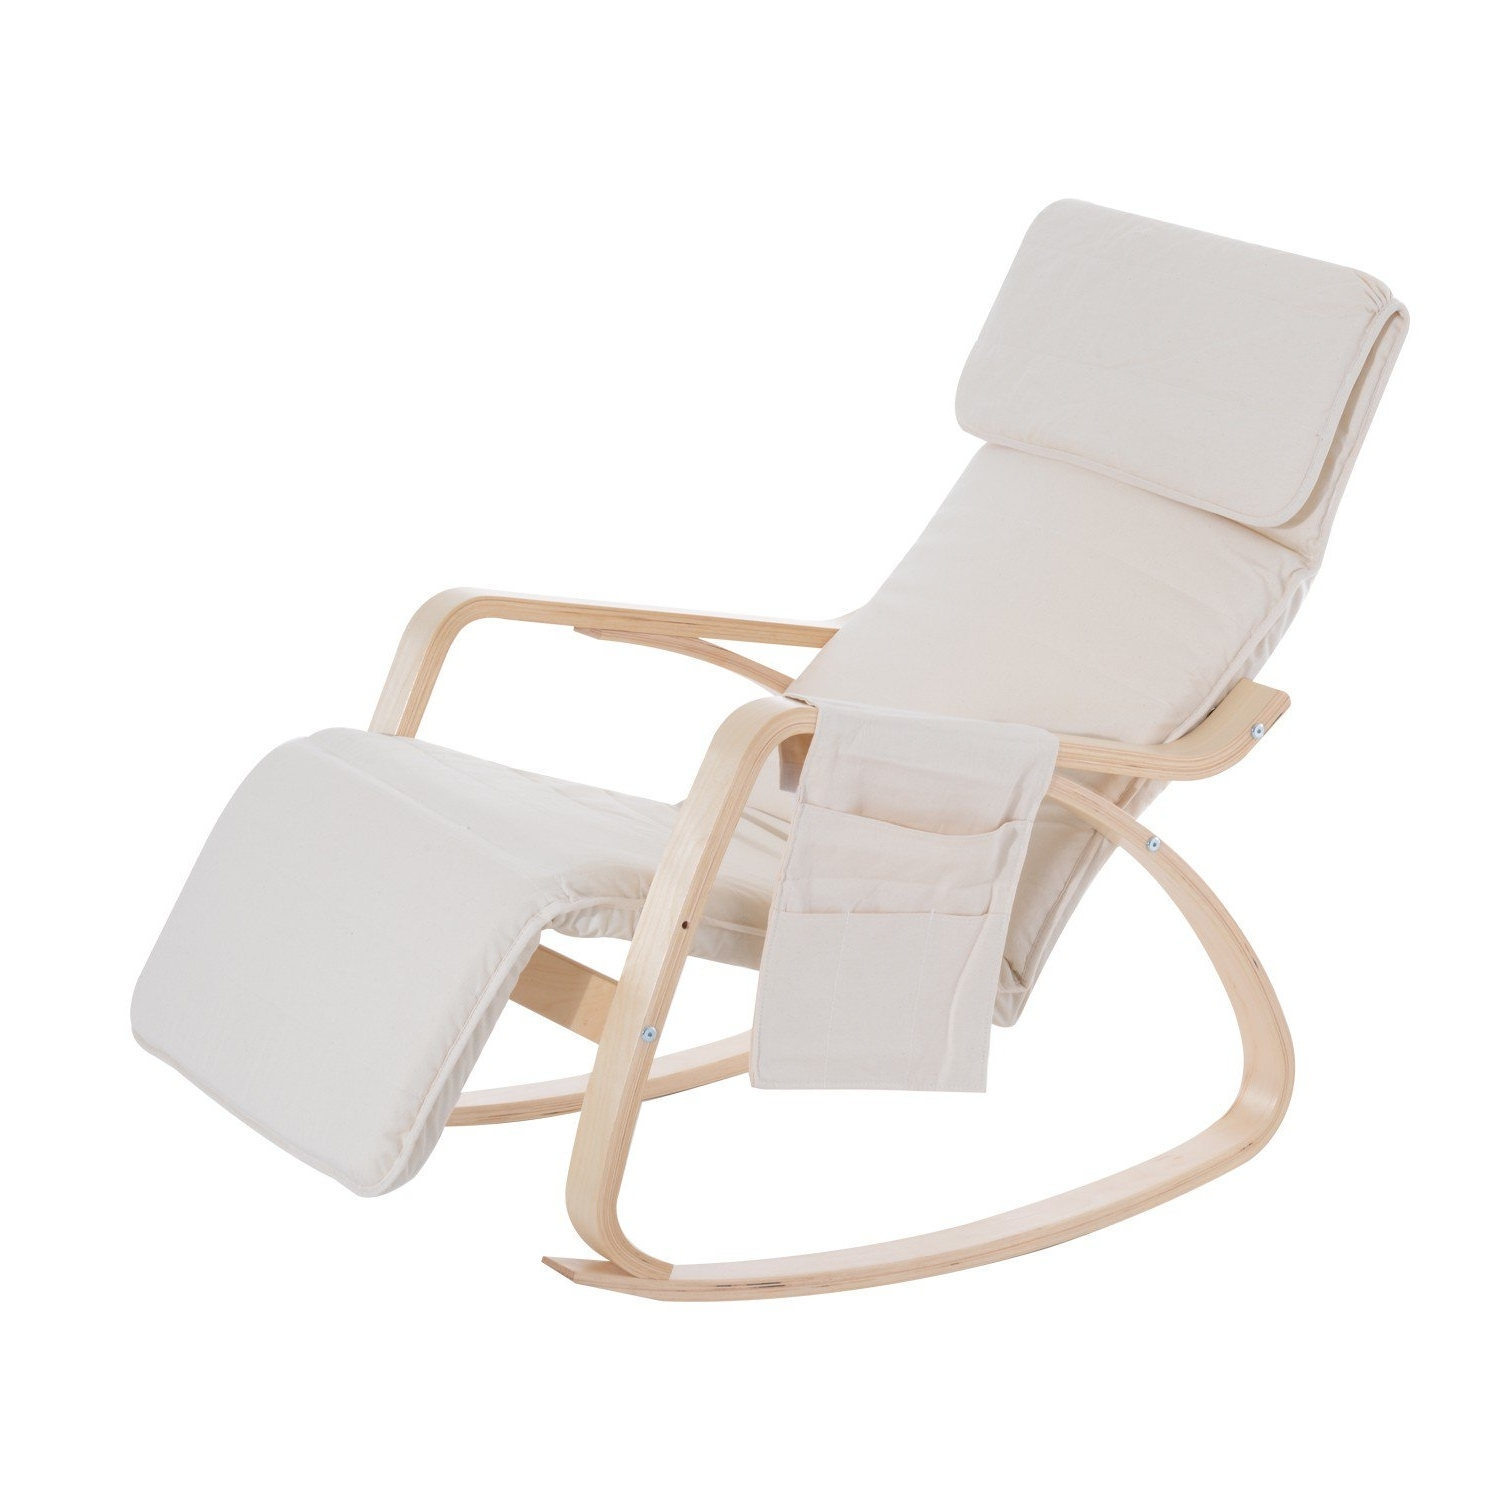 Most Popular Rocking Chairs With Footrest Pertaining To Homcom Rocking Chair W/adjustable Footrest & Side Pocket Beige (View 6 of 20)